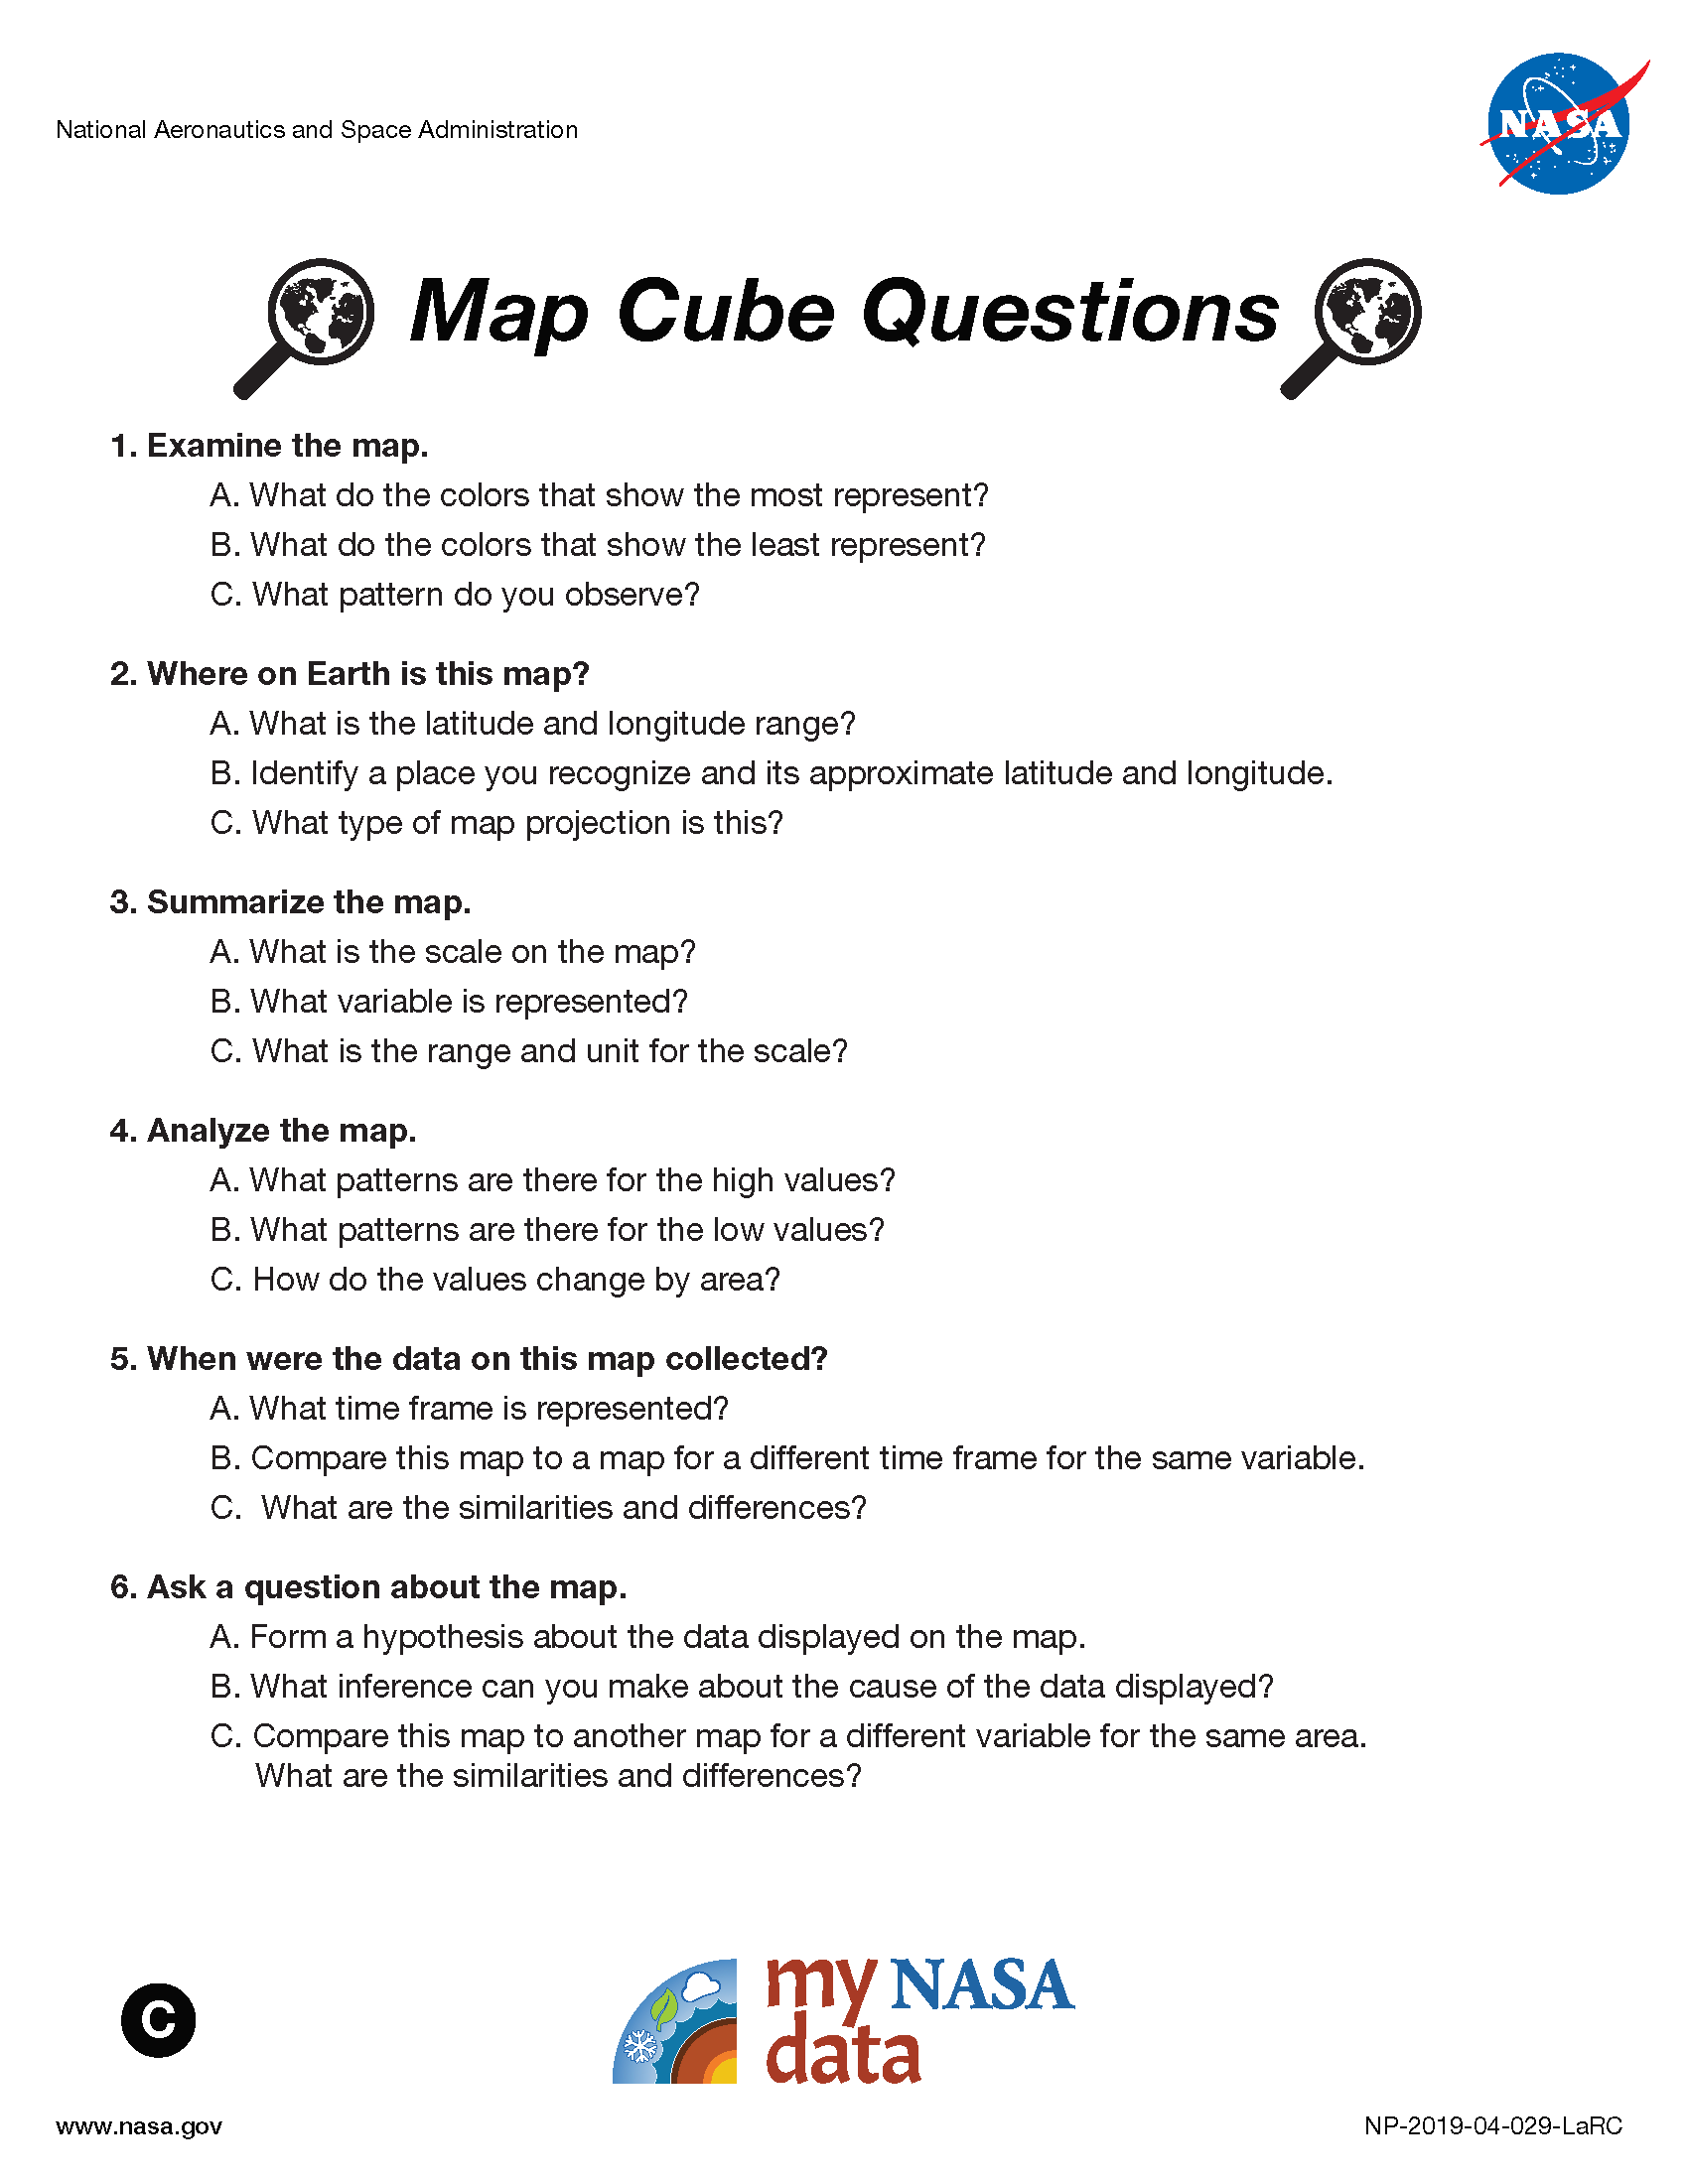 My NASA Data - Data Literacy Cubes - Map Cube Questions - Advanced